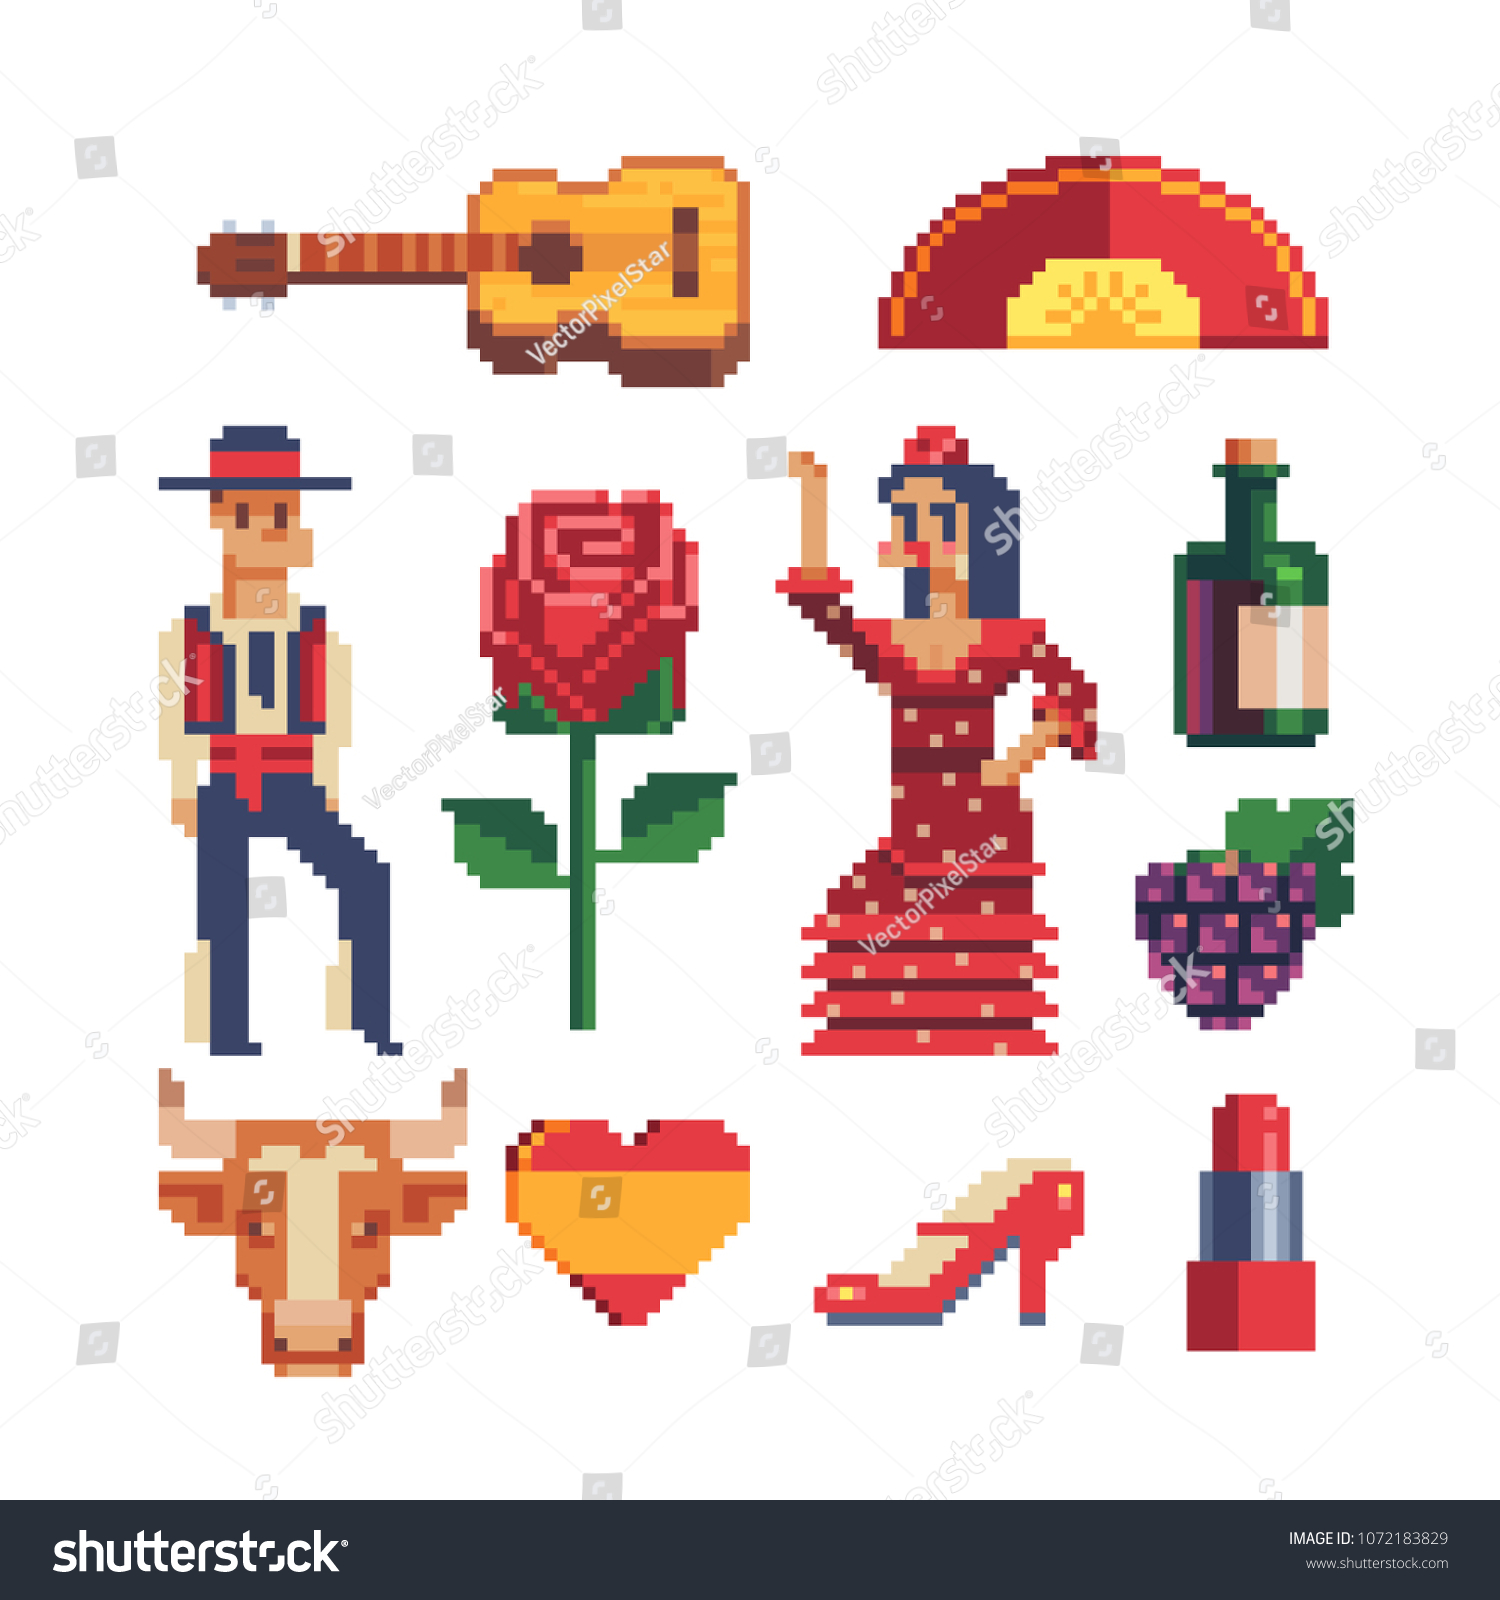 Spain Traditional Elements Pixel Art 80s Stock Vector